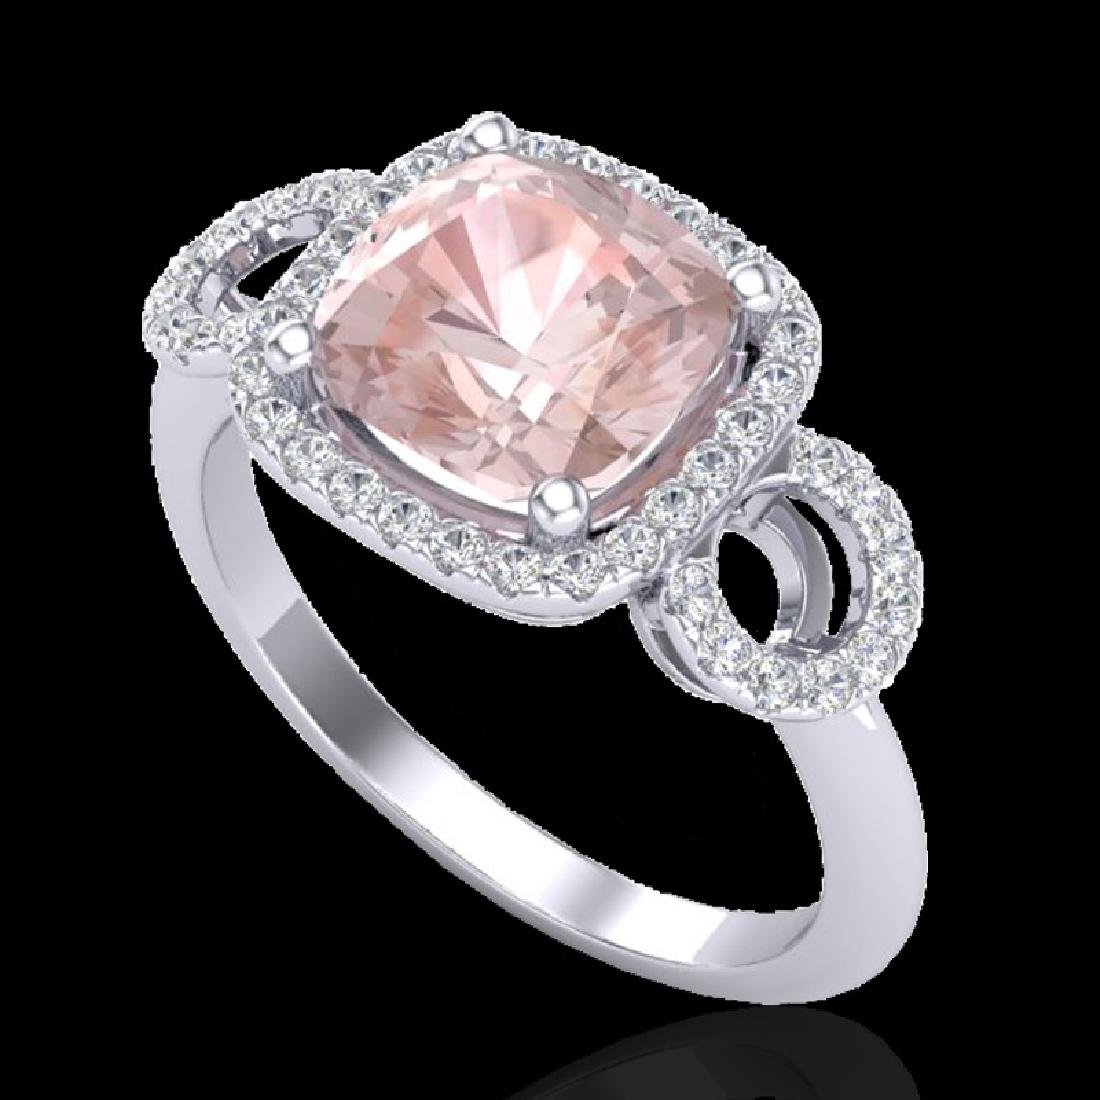 2.75 CTW Morganite & Micro VS/SI Diamond Ring 18K White - 2